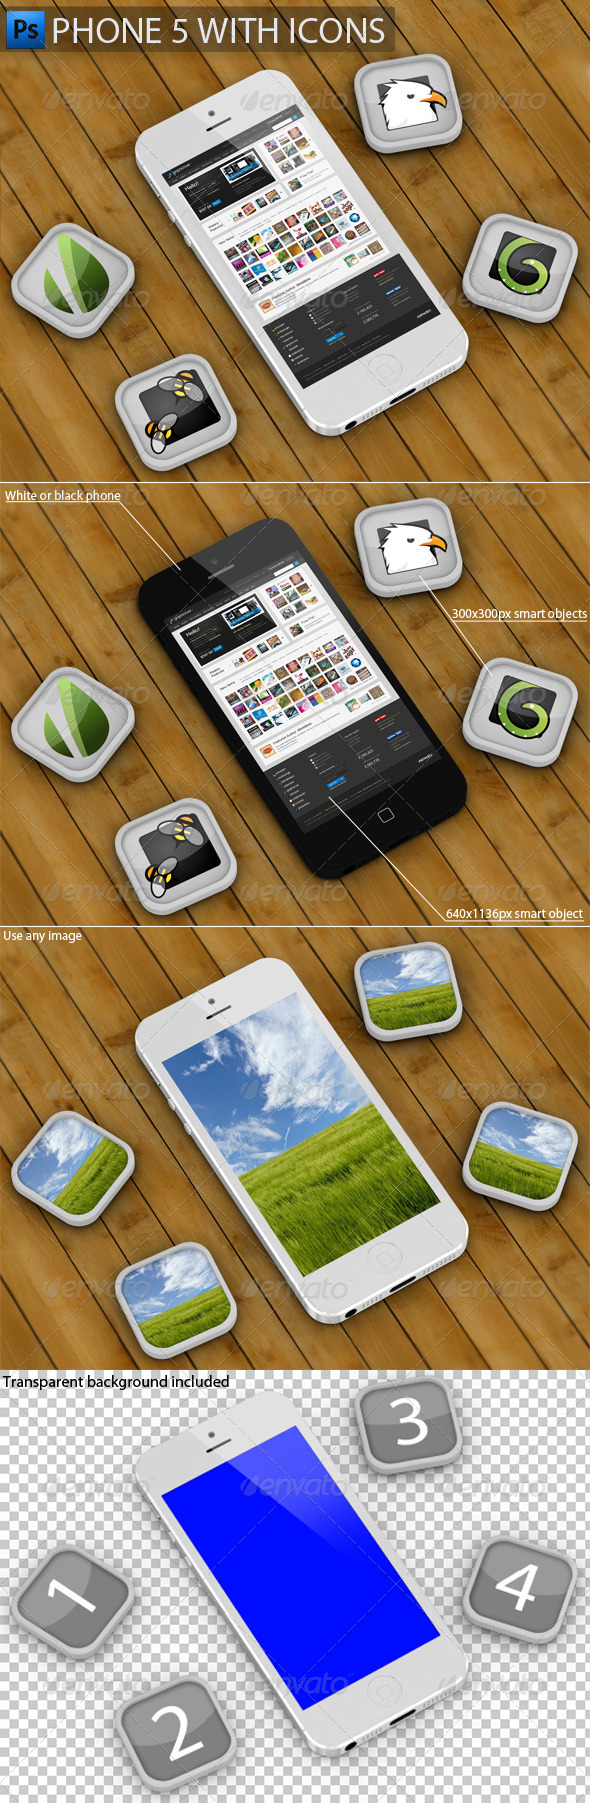 GraphicRiver Phone 5 with Icons Mockup 3719822